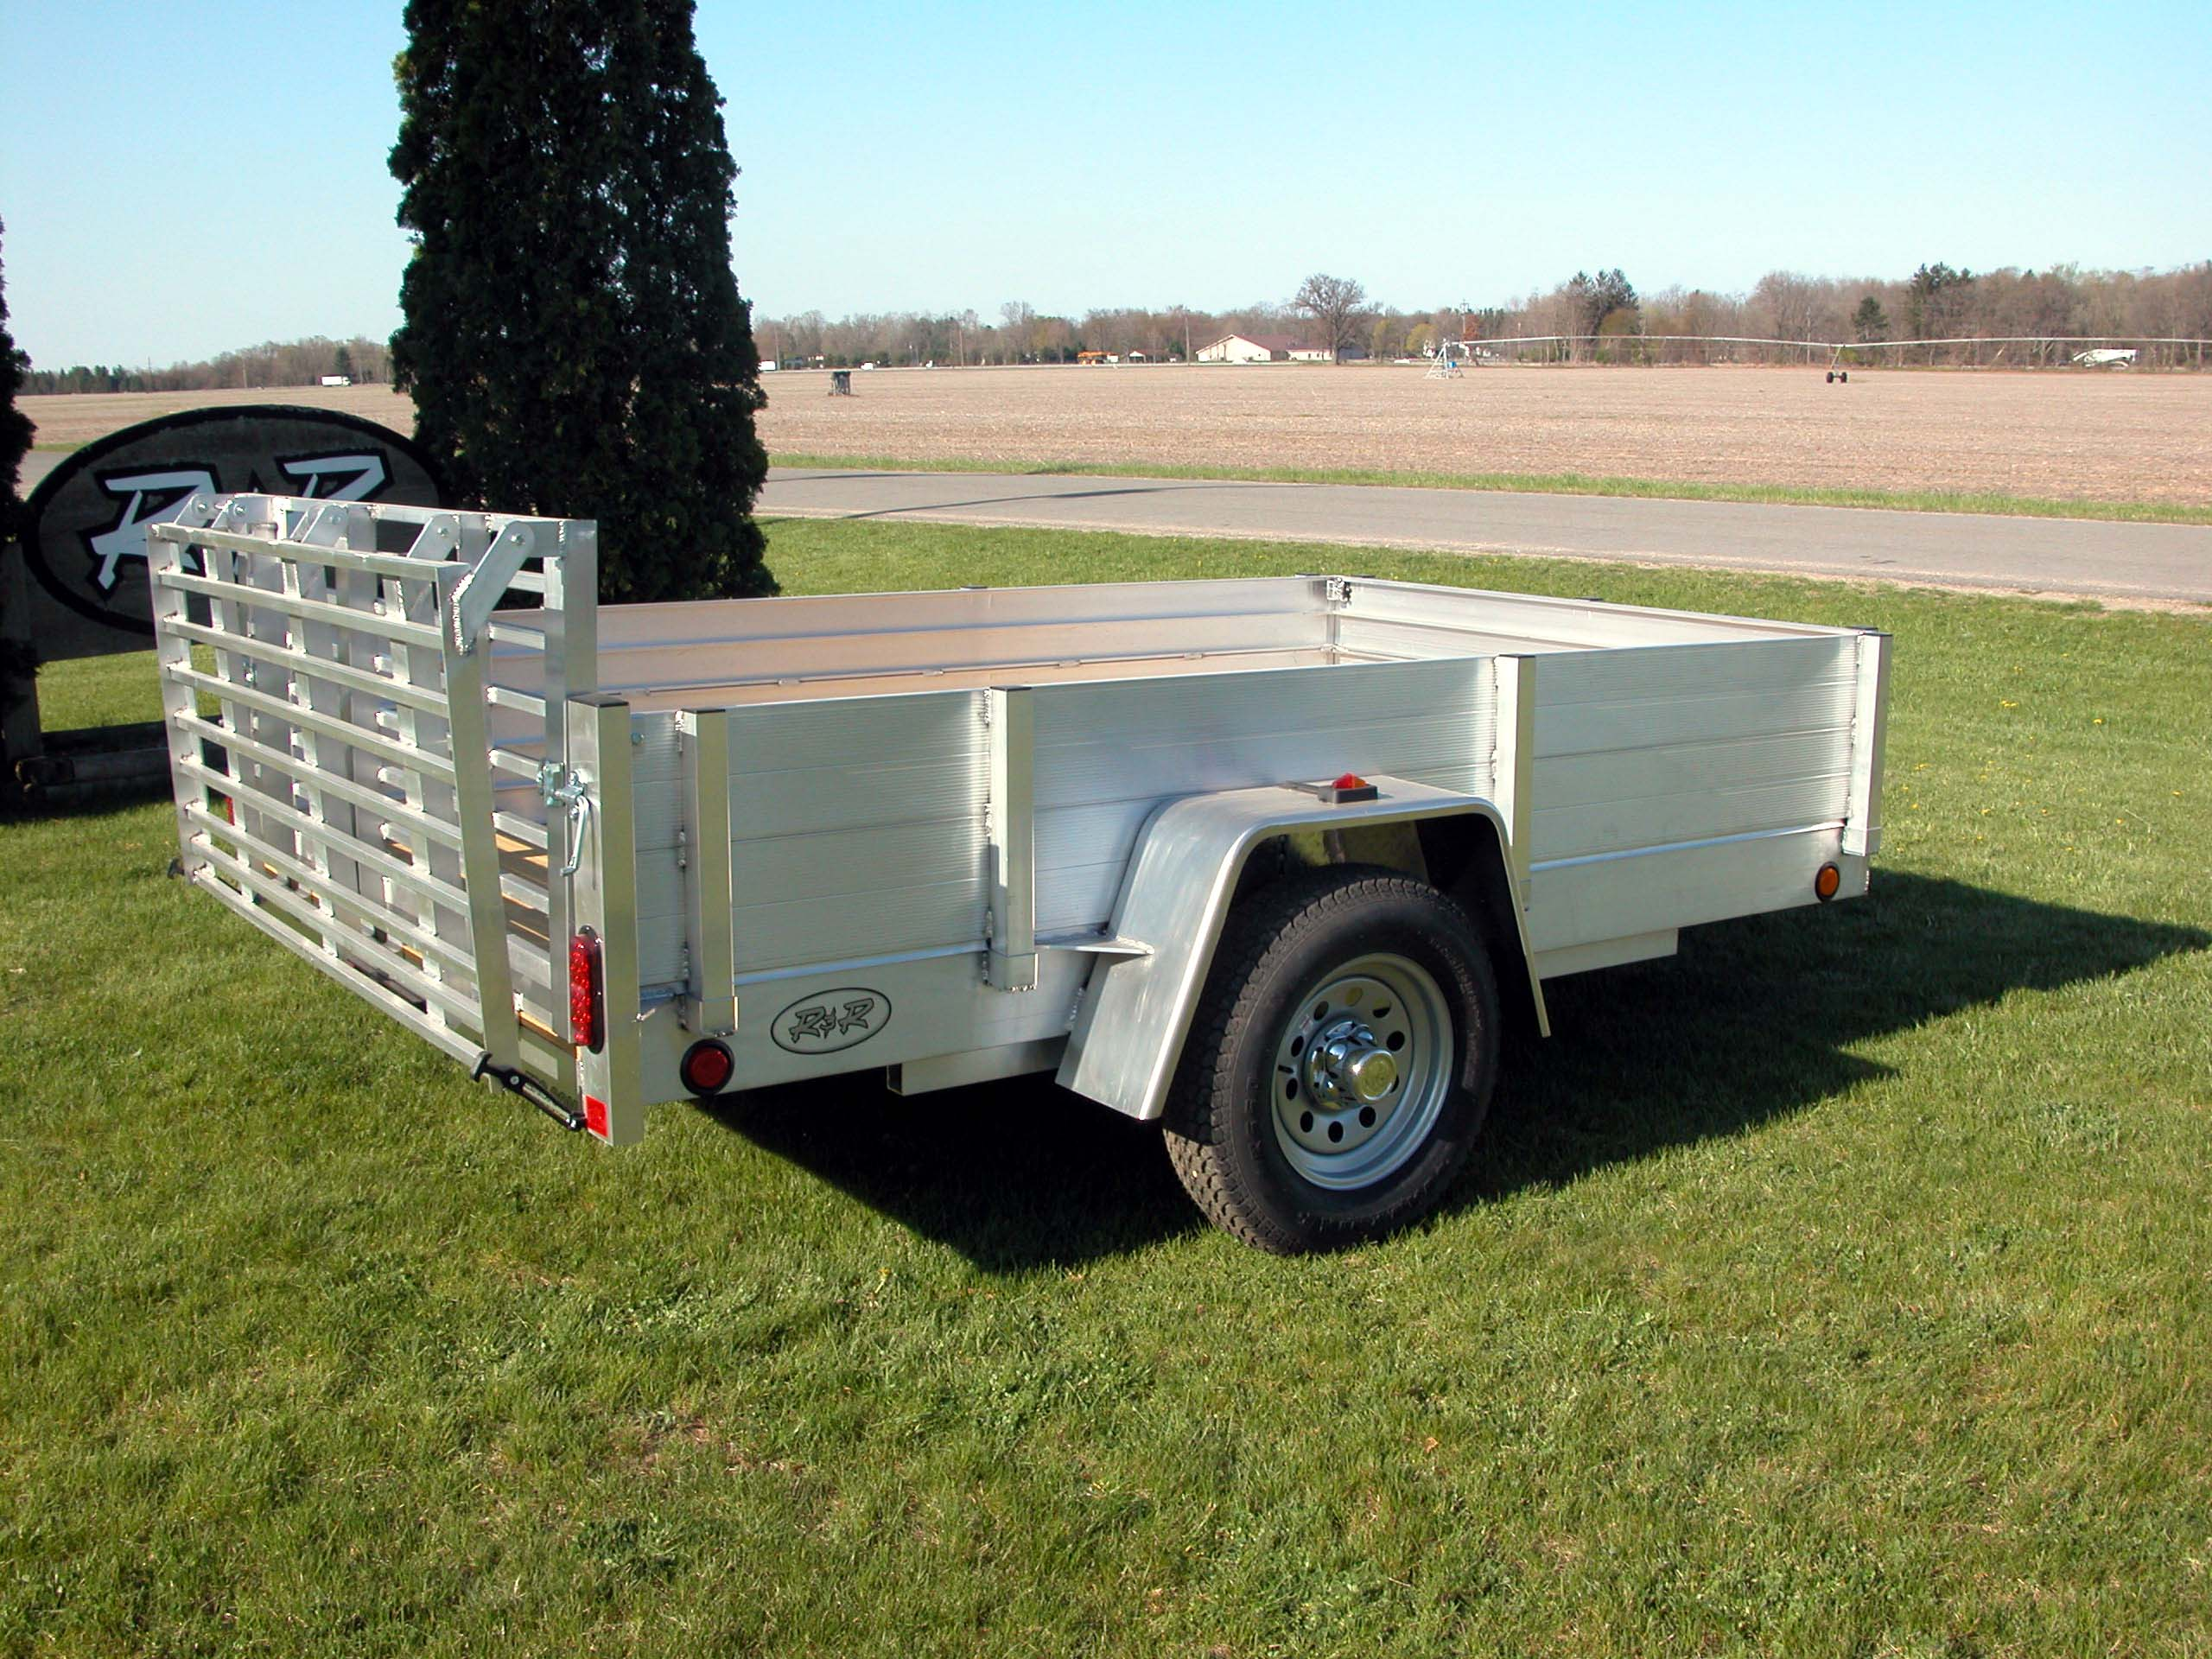 R and p carriages trailers parts service and rentals aluminum plank siding utility trailer sciox Choice Image